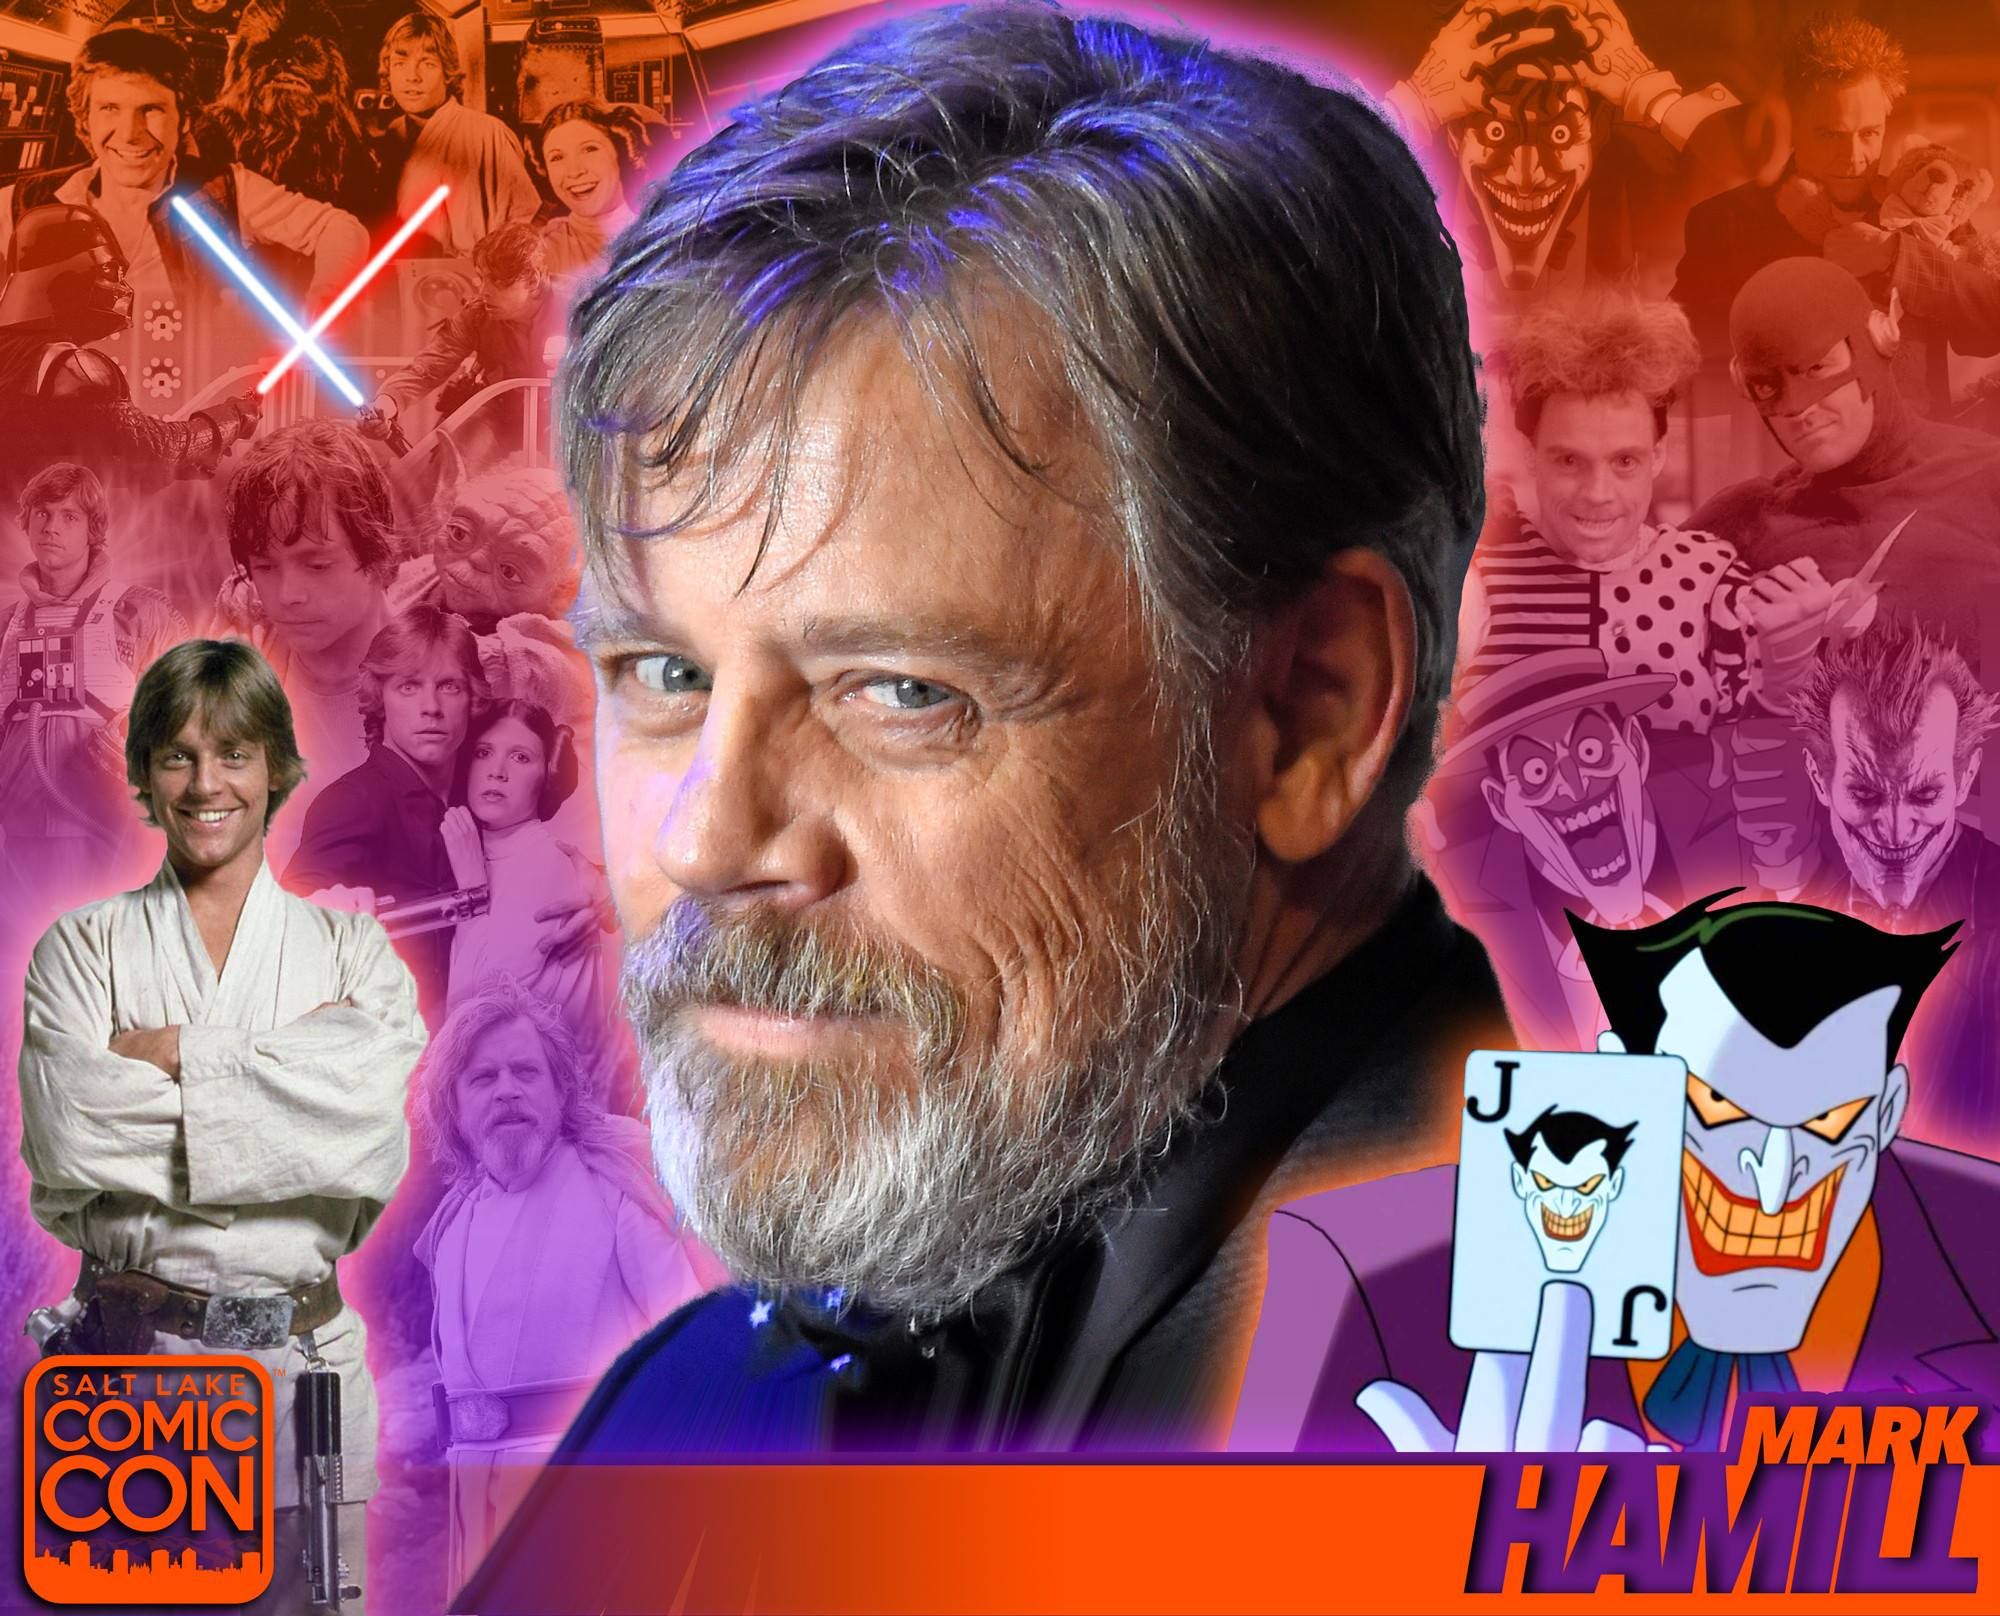 Mark Hamill is coming to Salt Lake Comic Con!